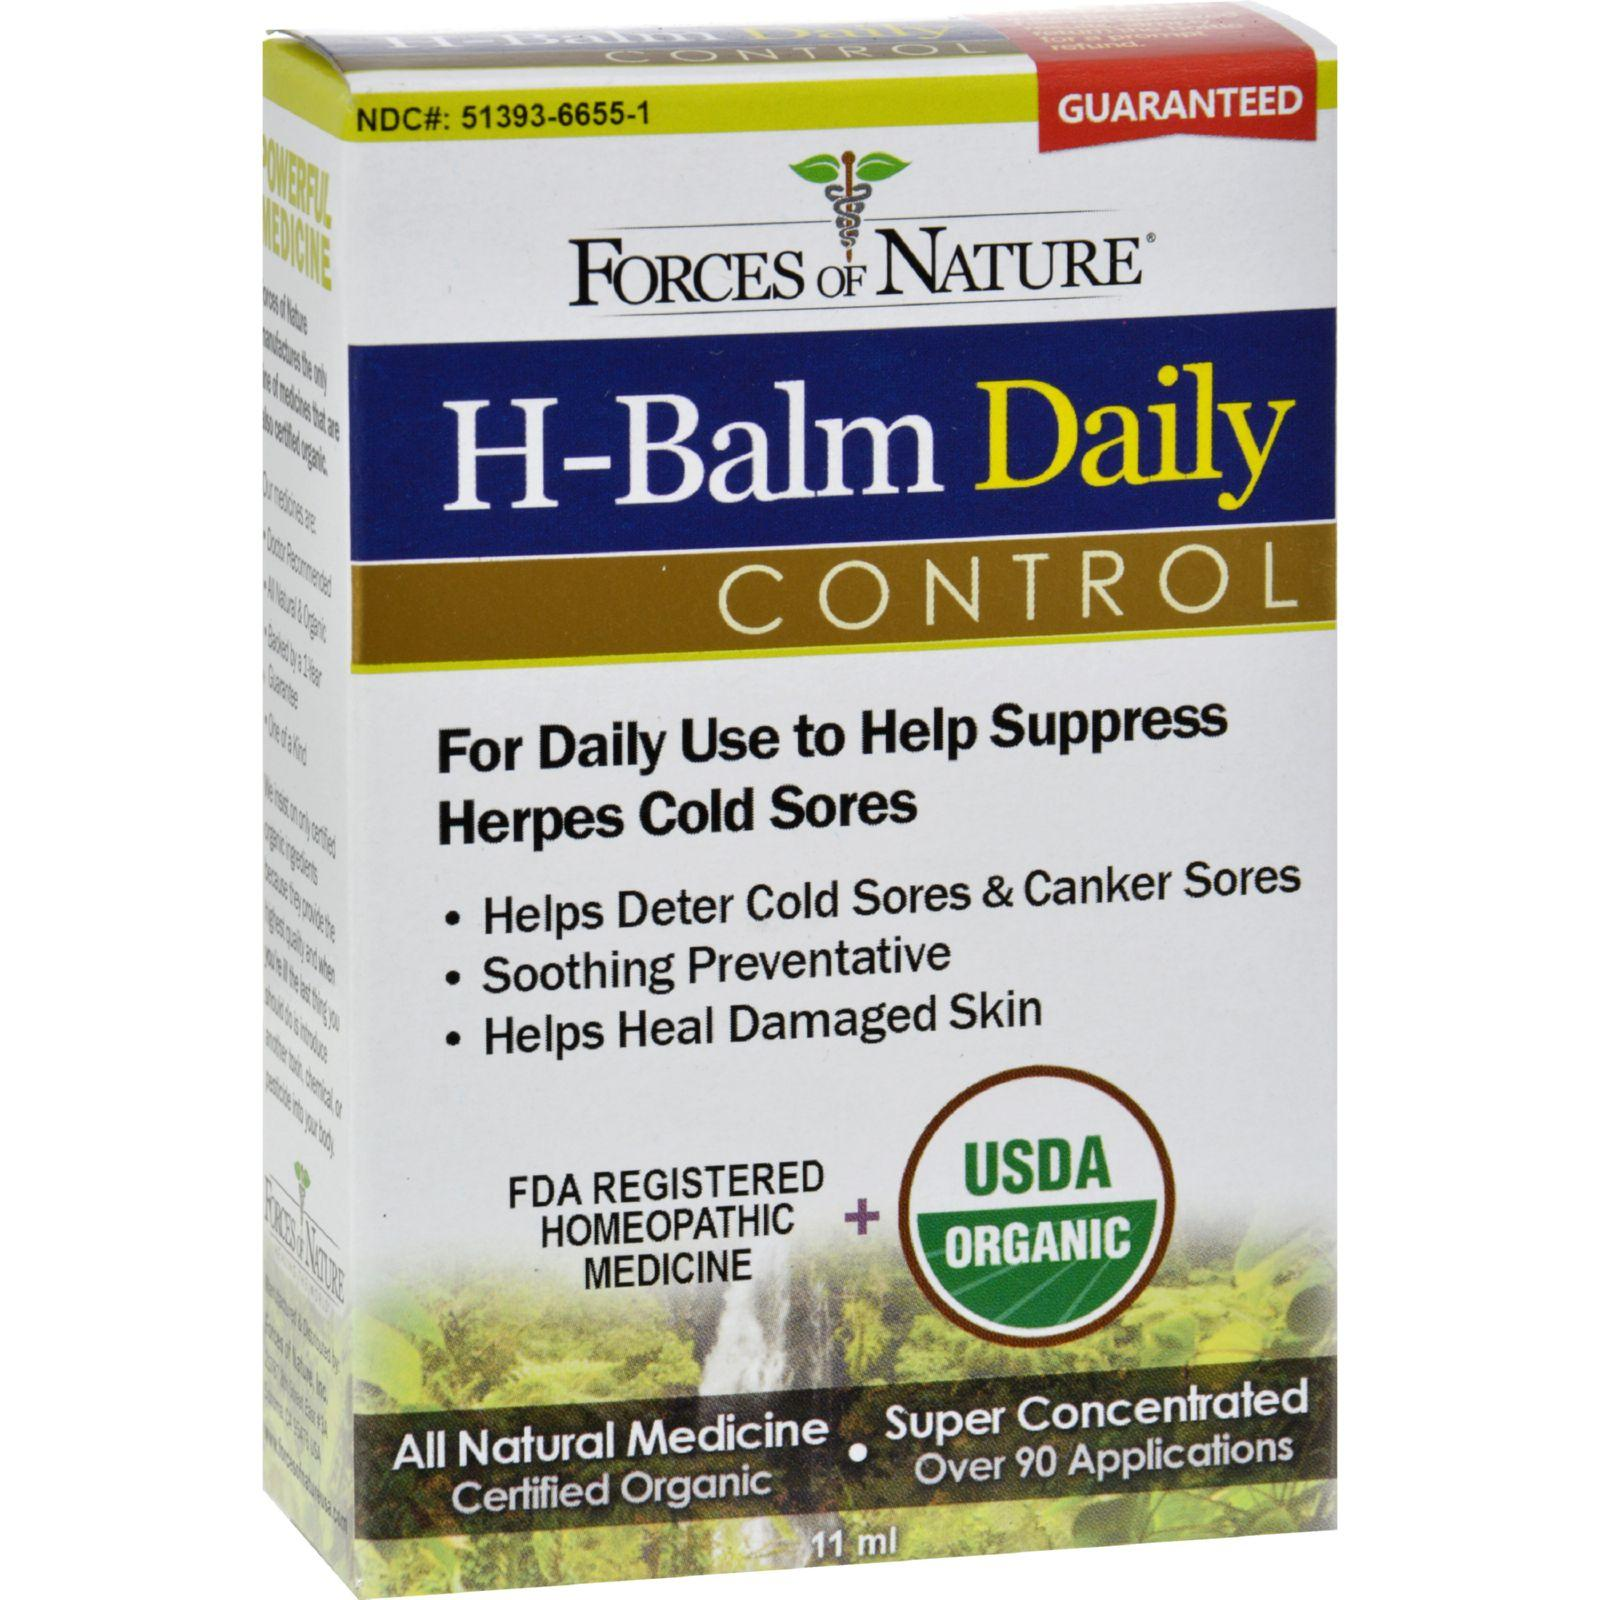 H- Balm Daily Control- 11ml- Forces Of Nature